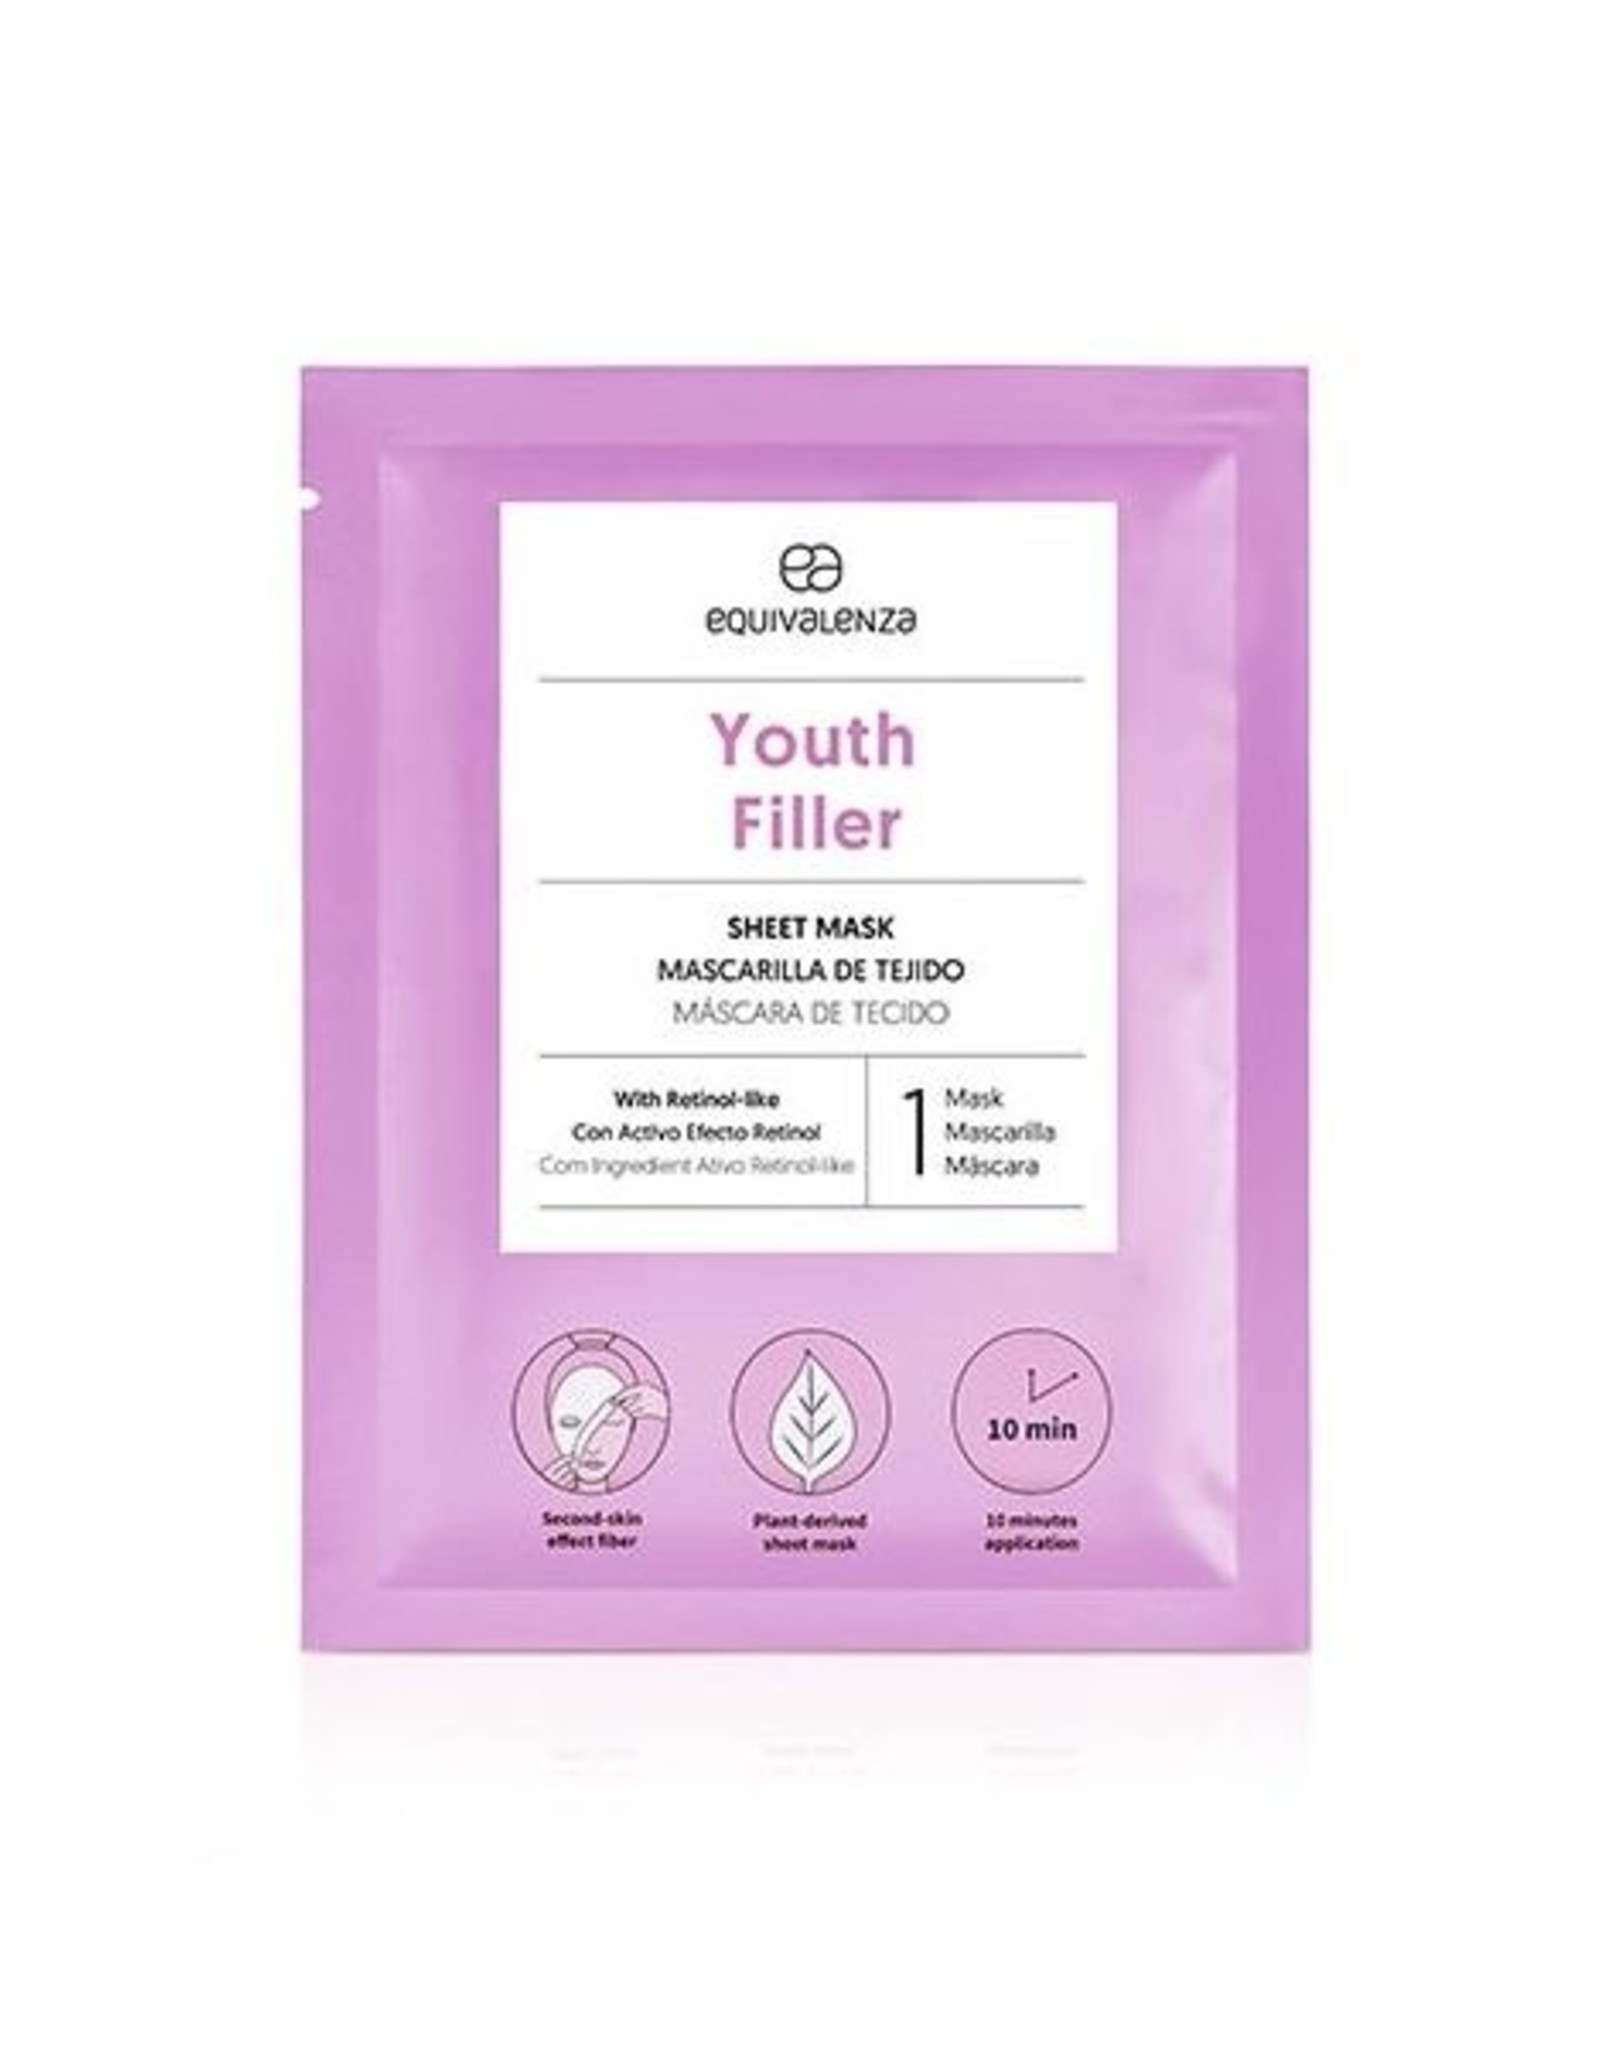 Equivalenza Youth Filler Mask